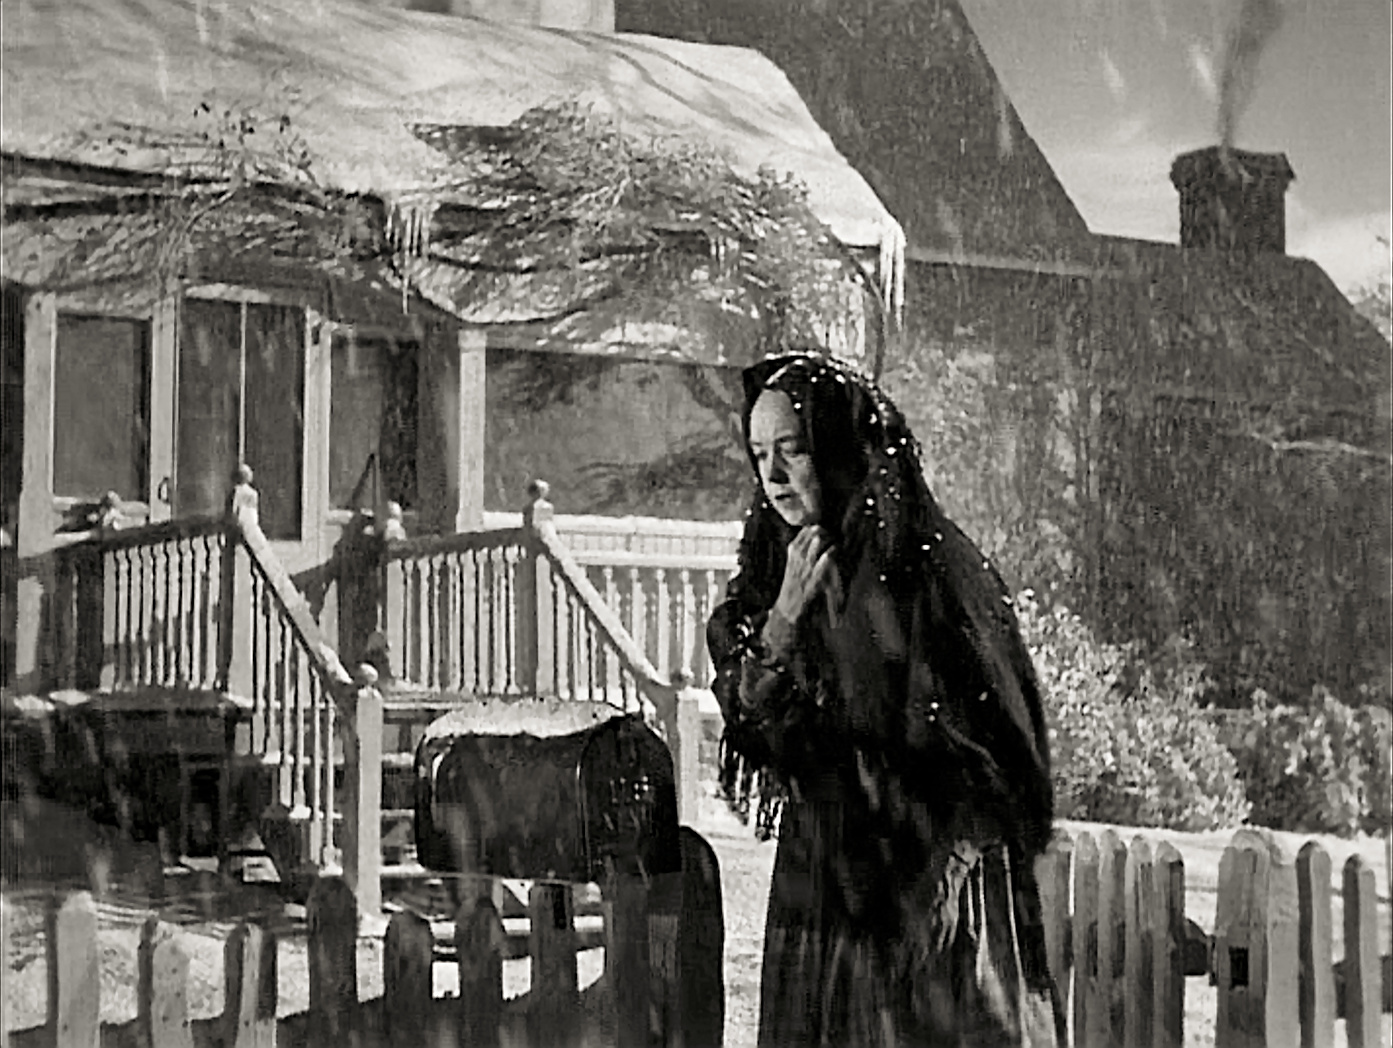 Lillian Gish in The Night of the hunter